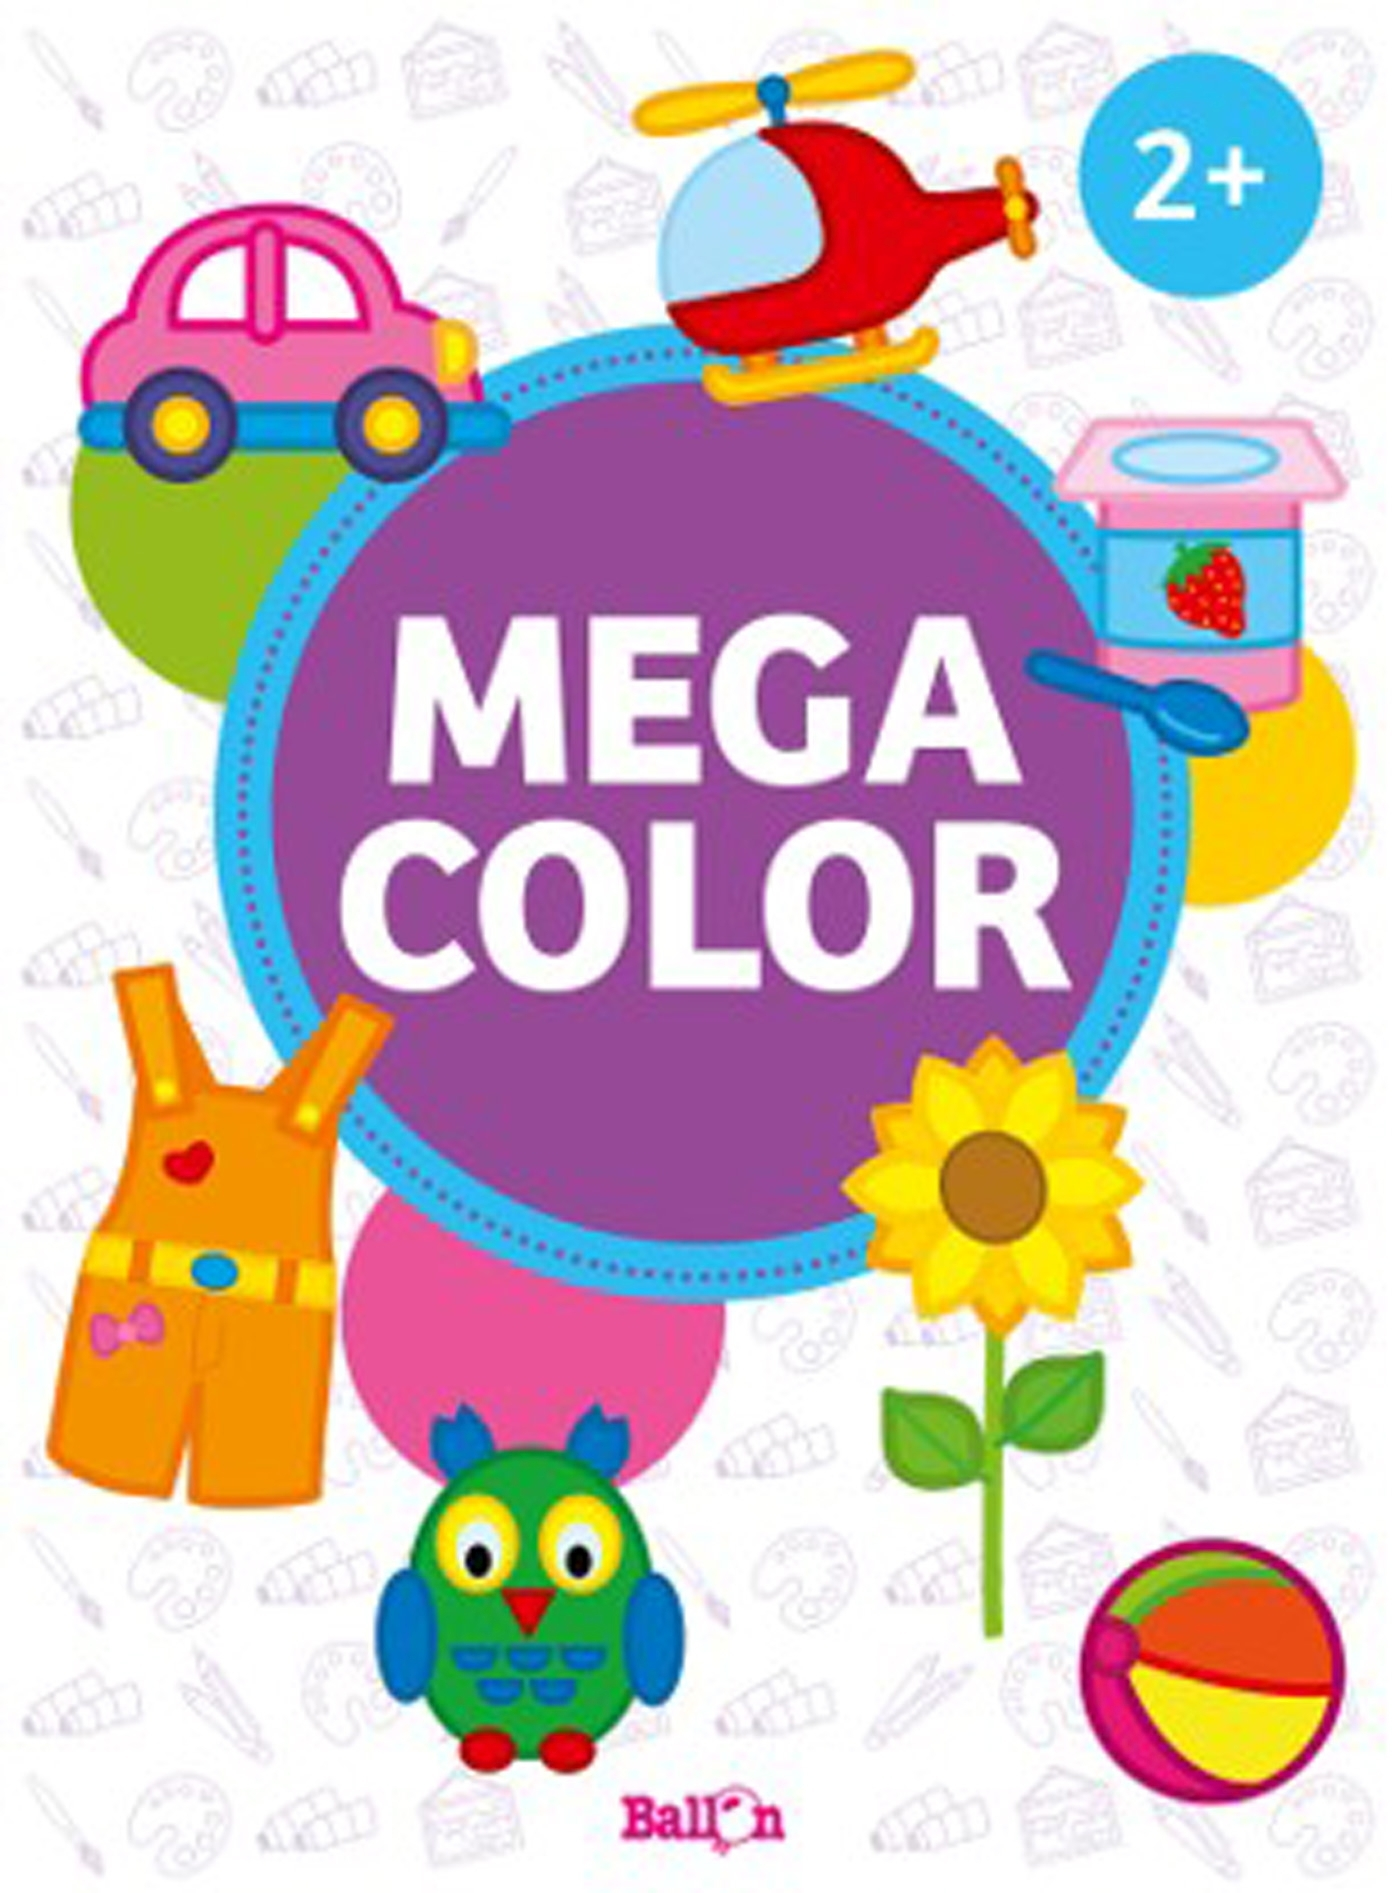 MEGA COLOR 2-3+